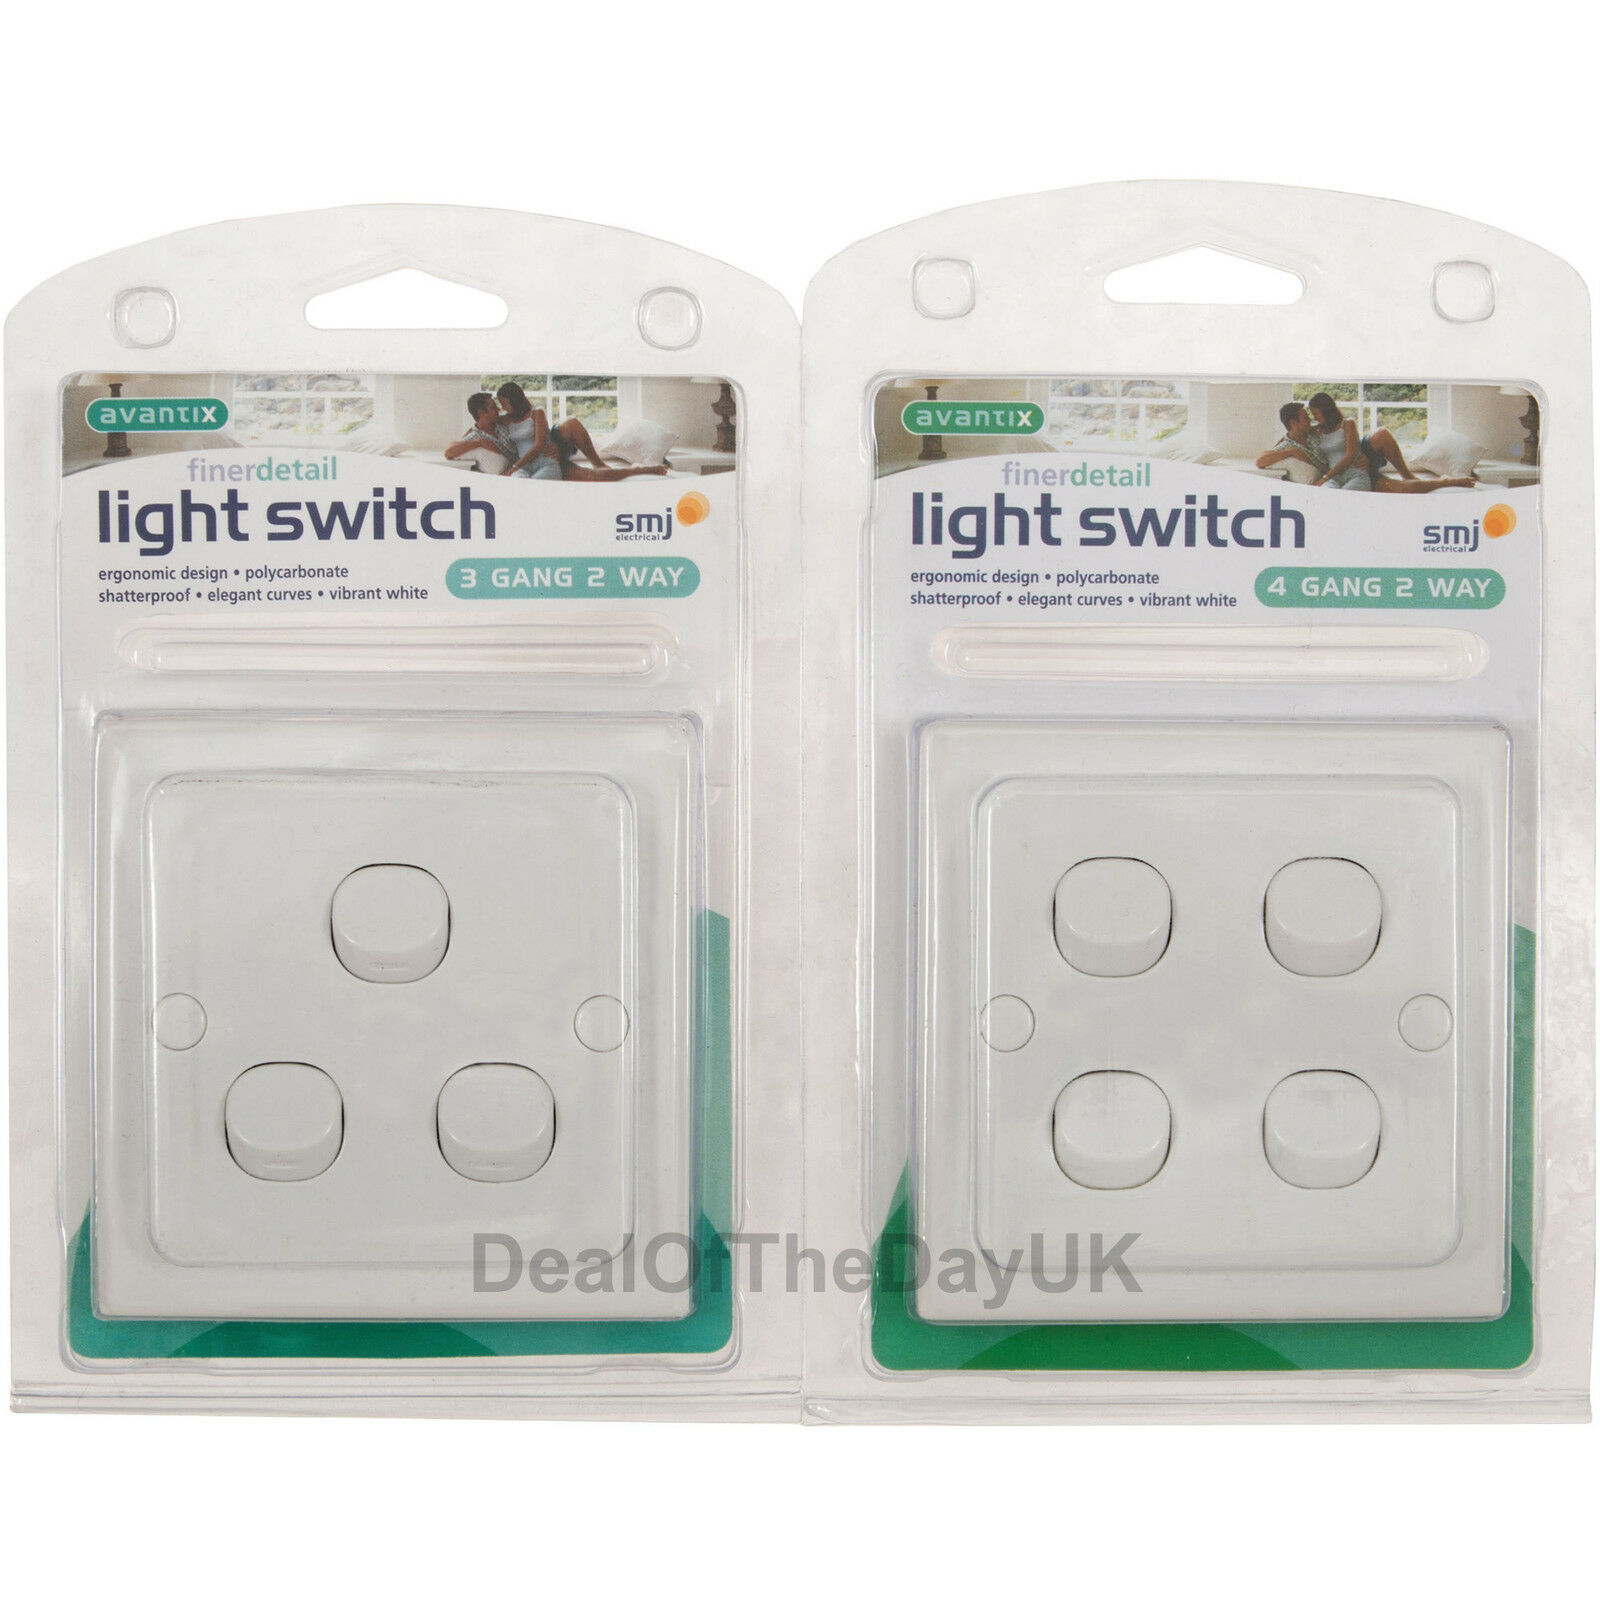 4 Or 3 Gang Light Switch White 2 Way Curved Plastic 240v Triple Quad Uk 1 Of 2free Shipping